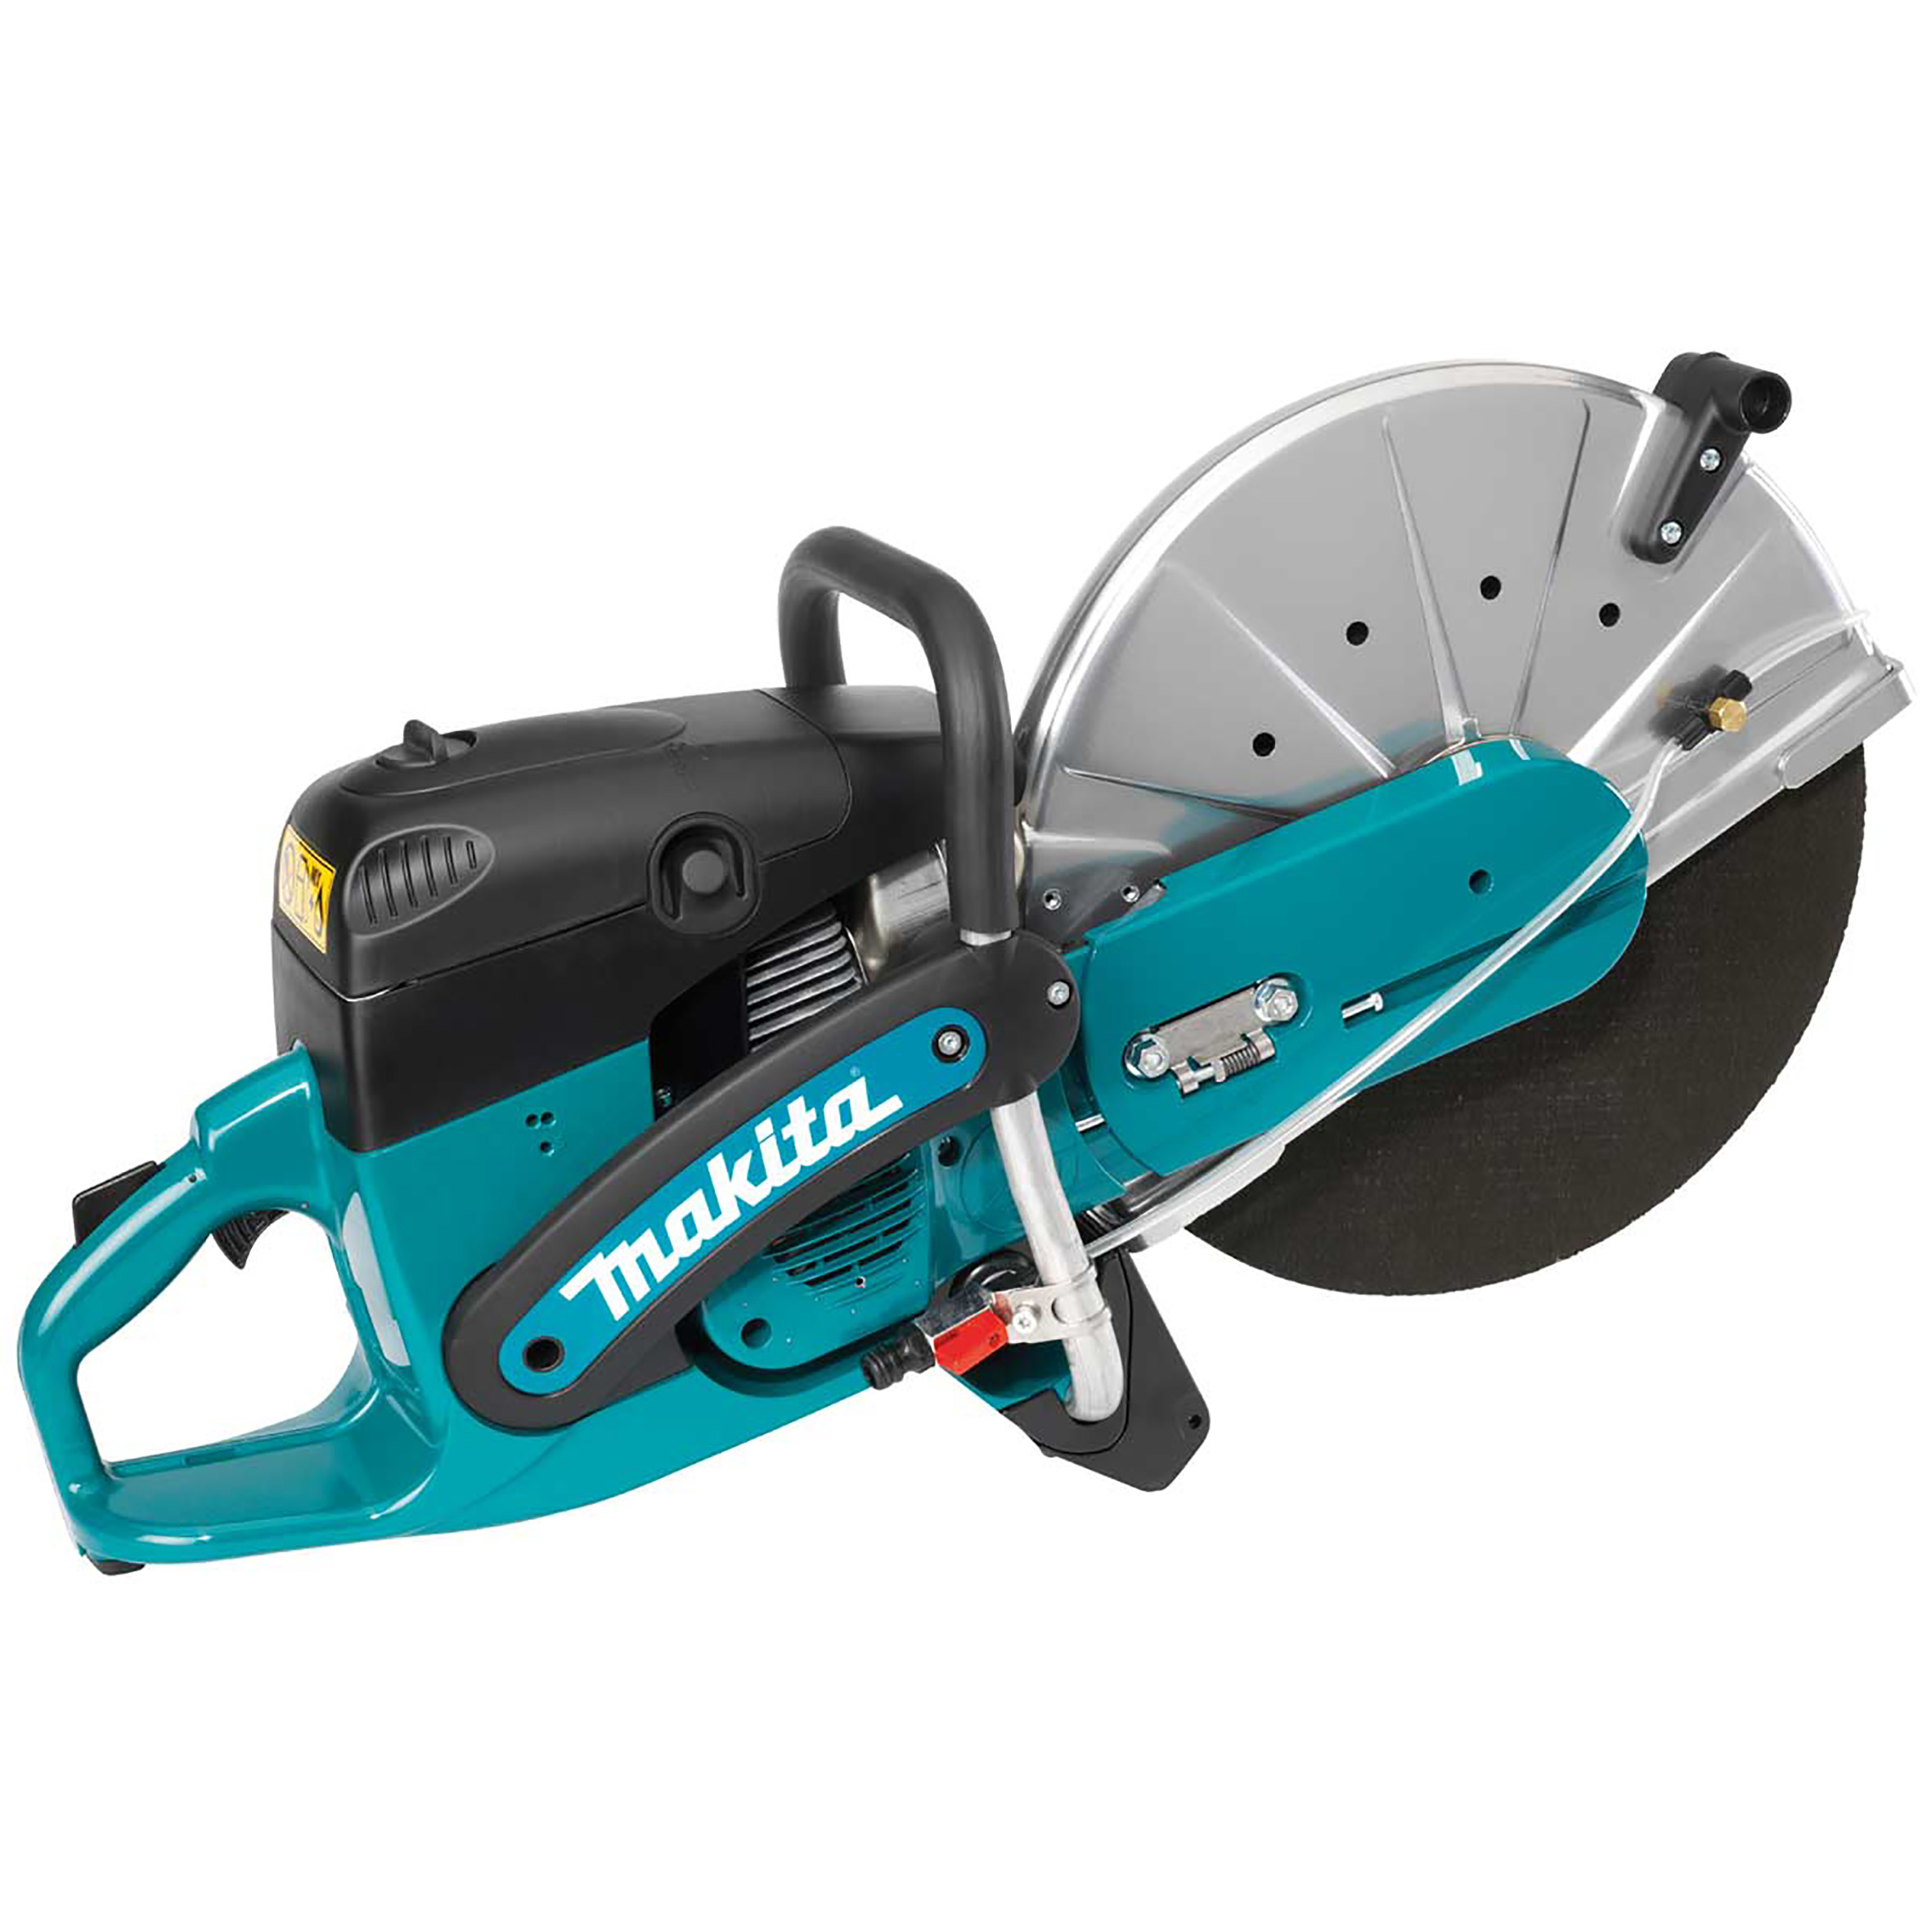 Makita Power Tools South Africa Petrol Power Cutter Ek8100ws